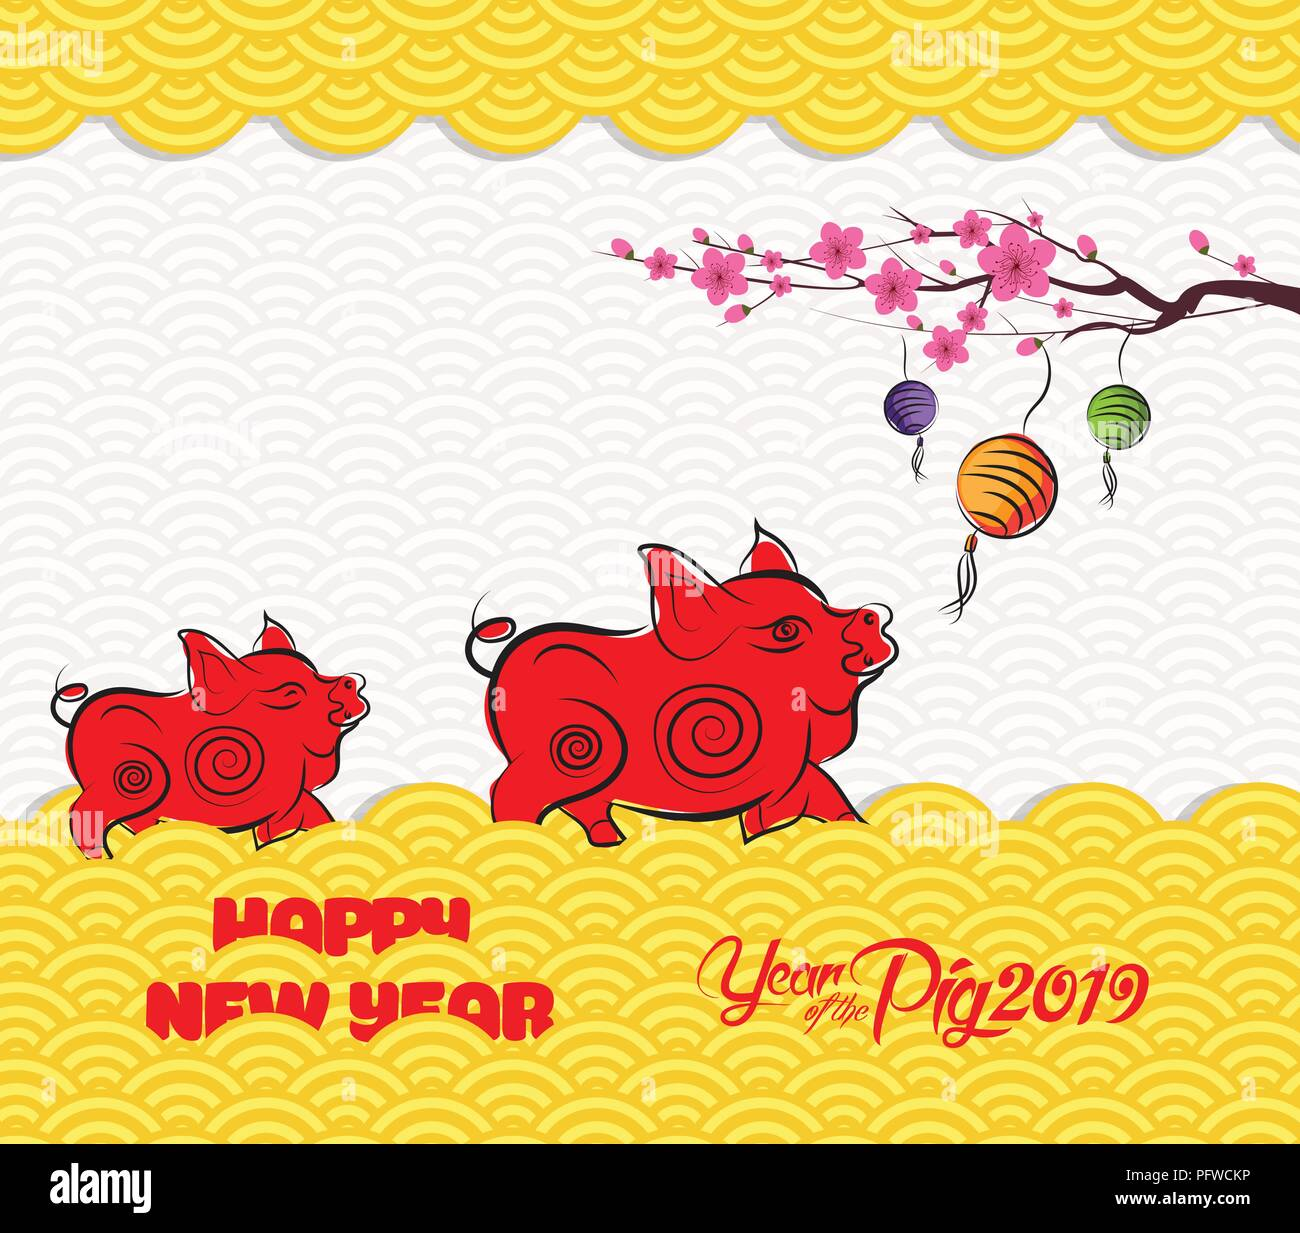 2019 chinese new year greeting card with traditionlal pattern border year of pig